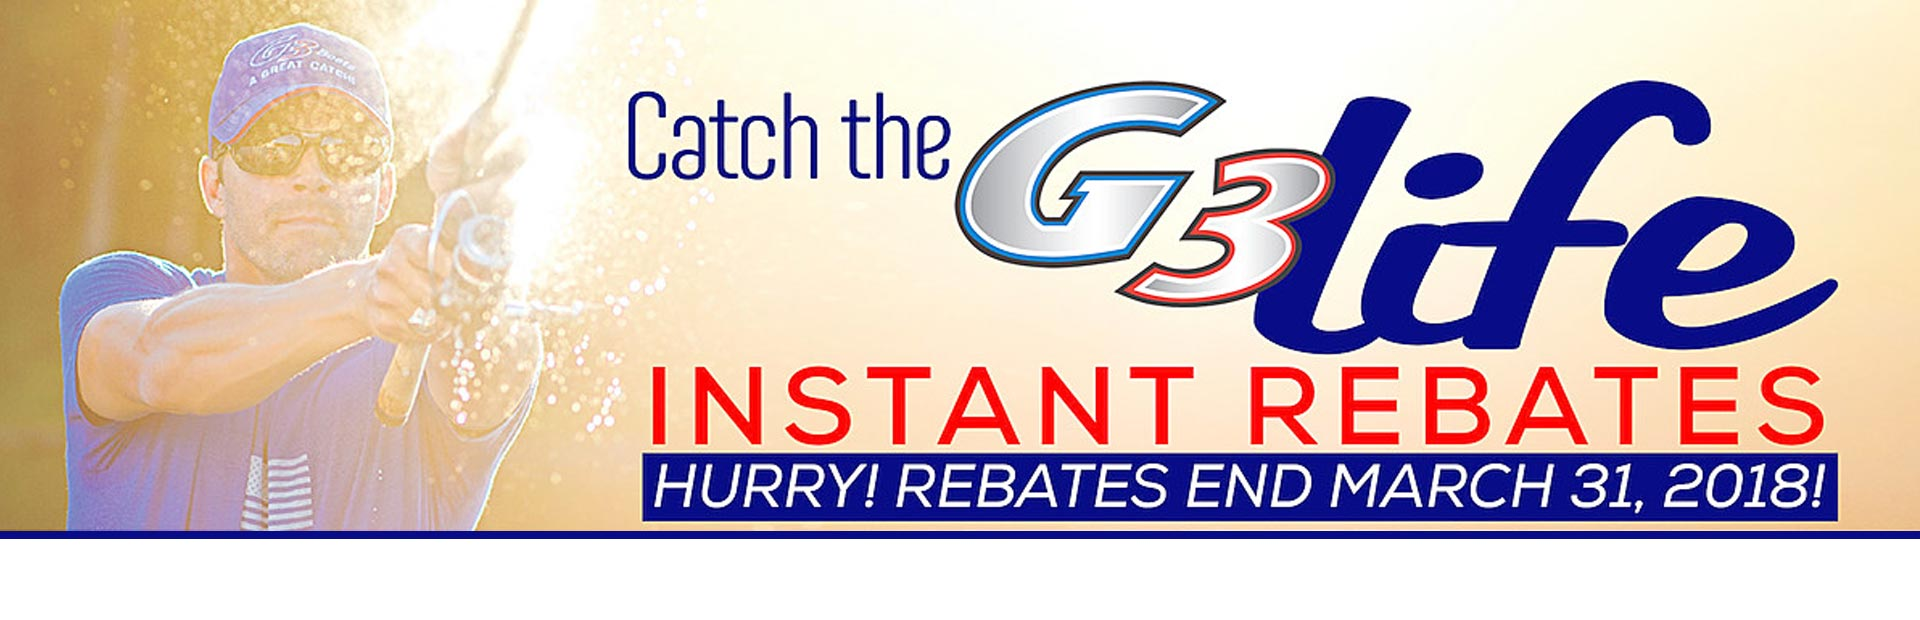 Catch the G3 Life Instant Rebates